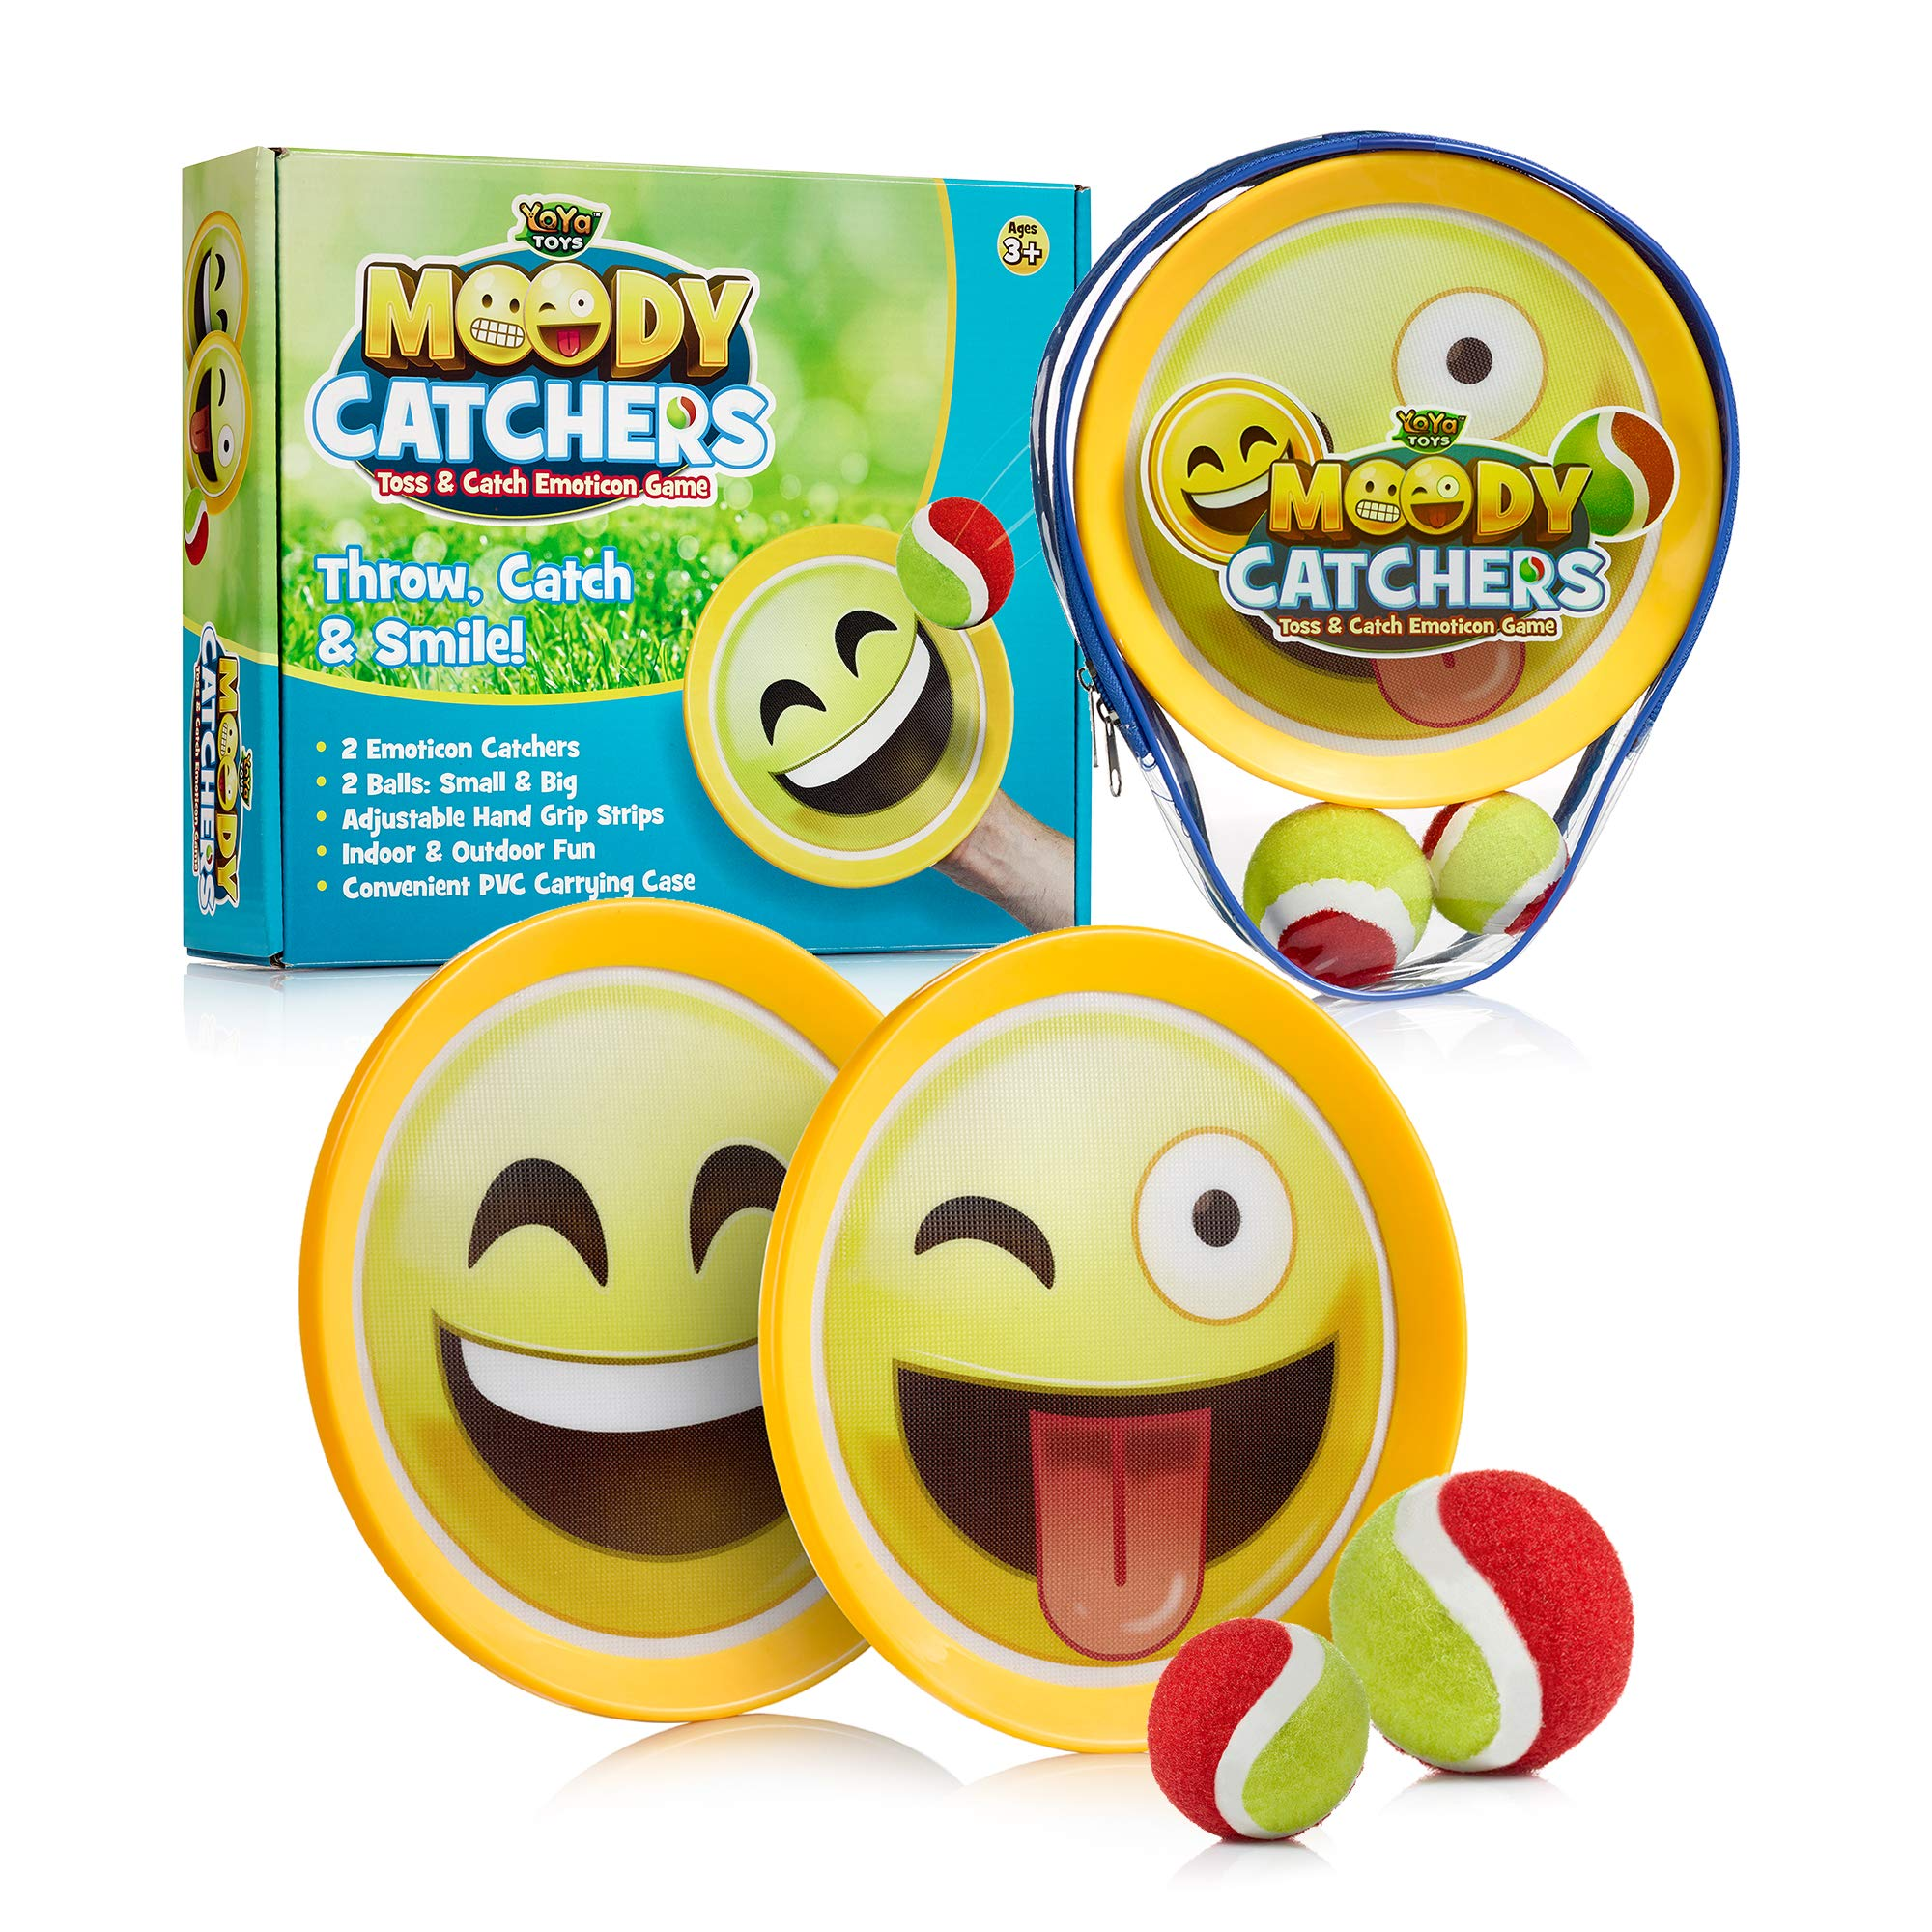 Emoji Toss & Catch Ball Game | 2 Disc Paddles, 2 Balls (One Big & One Small) & PVC Carry Bag Idea with Stunning Packaging | Safe, Durable & Family Friendly Game Set